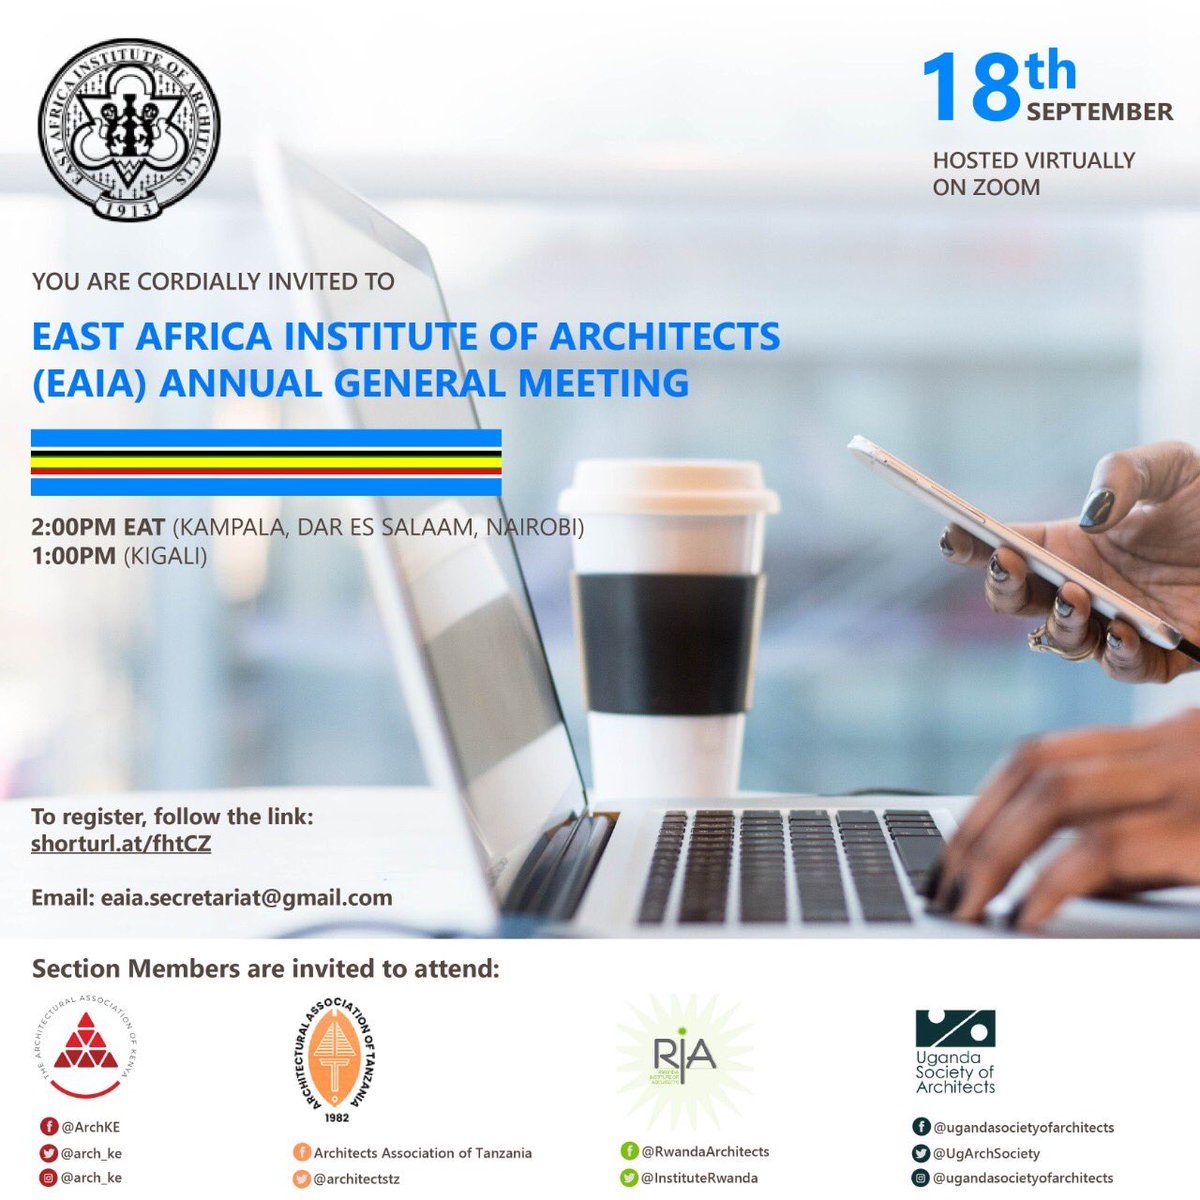 The East African Institute of Architects invites you the Annual General Meeting tomorrow. @KKCONSULTINGAR1 @RIBA @ArchForumUganda @architectandre @AUA_UAA @UIA_Architects @UIA_Architects @Arch_KE click the link below to register:  https://t.co/b0Qz4KvsJI https://t.co/01mFxfZU33